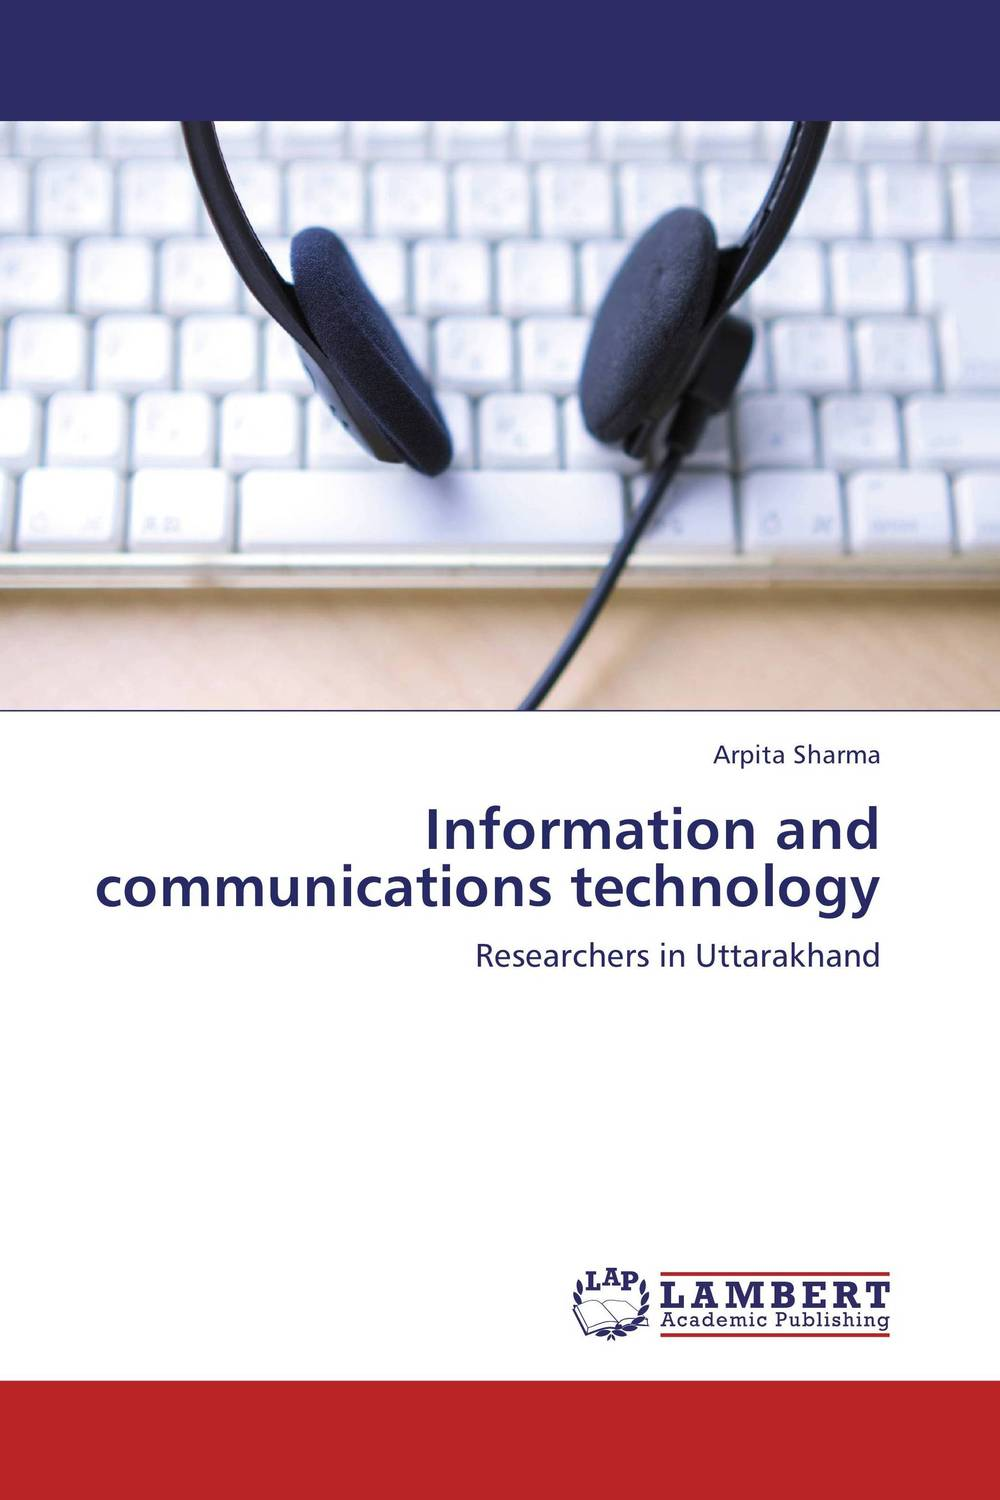 Information and communications technology effect of information and communication technology on research and development activities